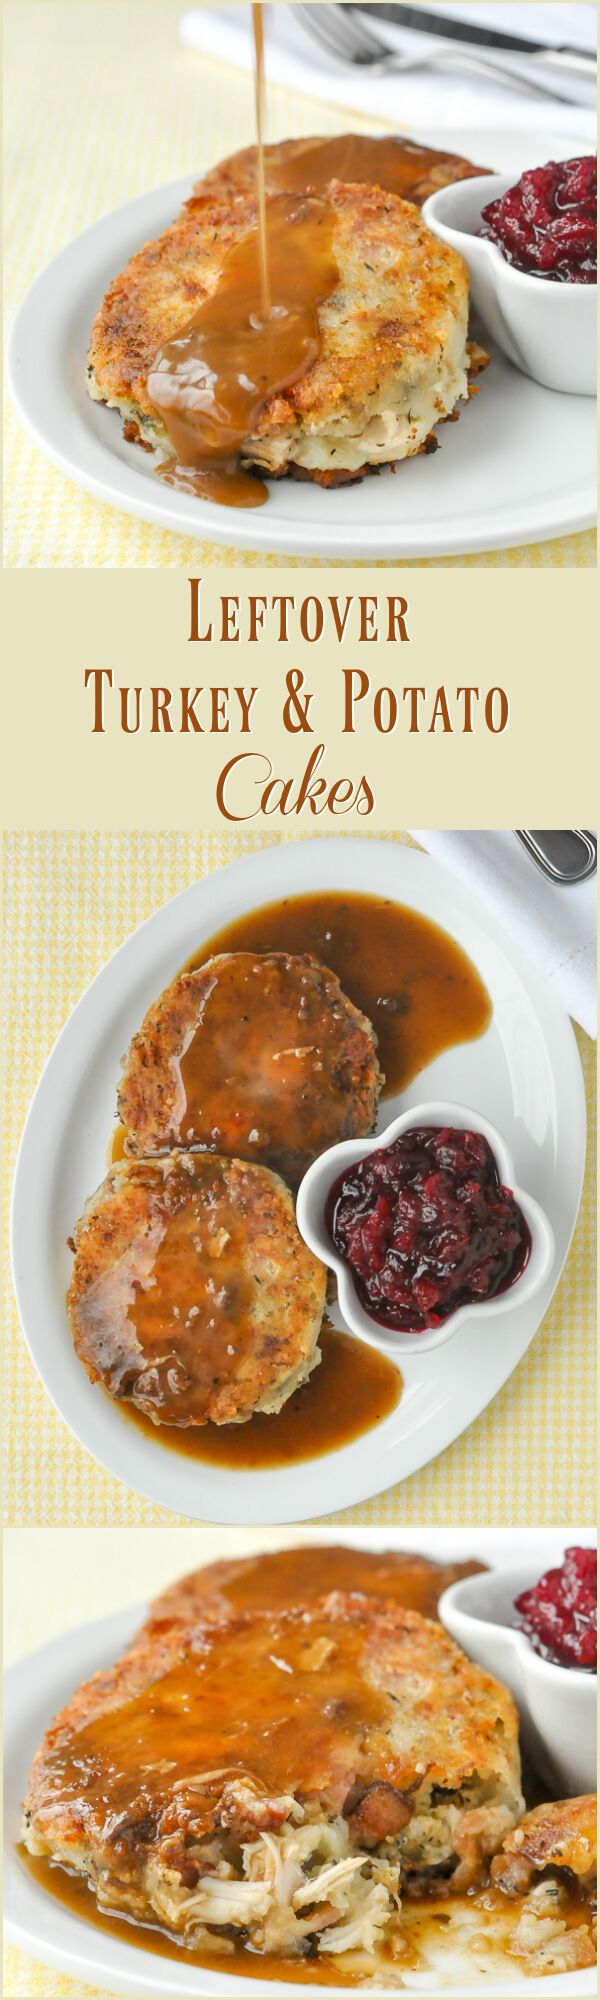 Leftover Turkey Potato Cakes - pure comfort food heaven...and from leftovers too! A must-make recipe for after Thanksgiving or Christmas. These crispy potato and turkey cakes may be even better than the meal that preceded them.